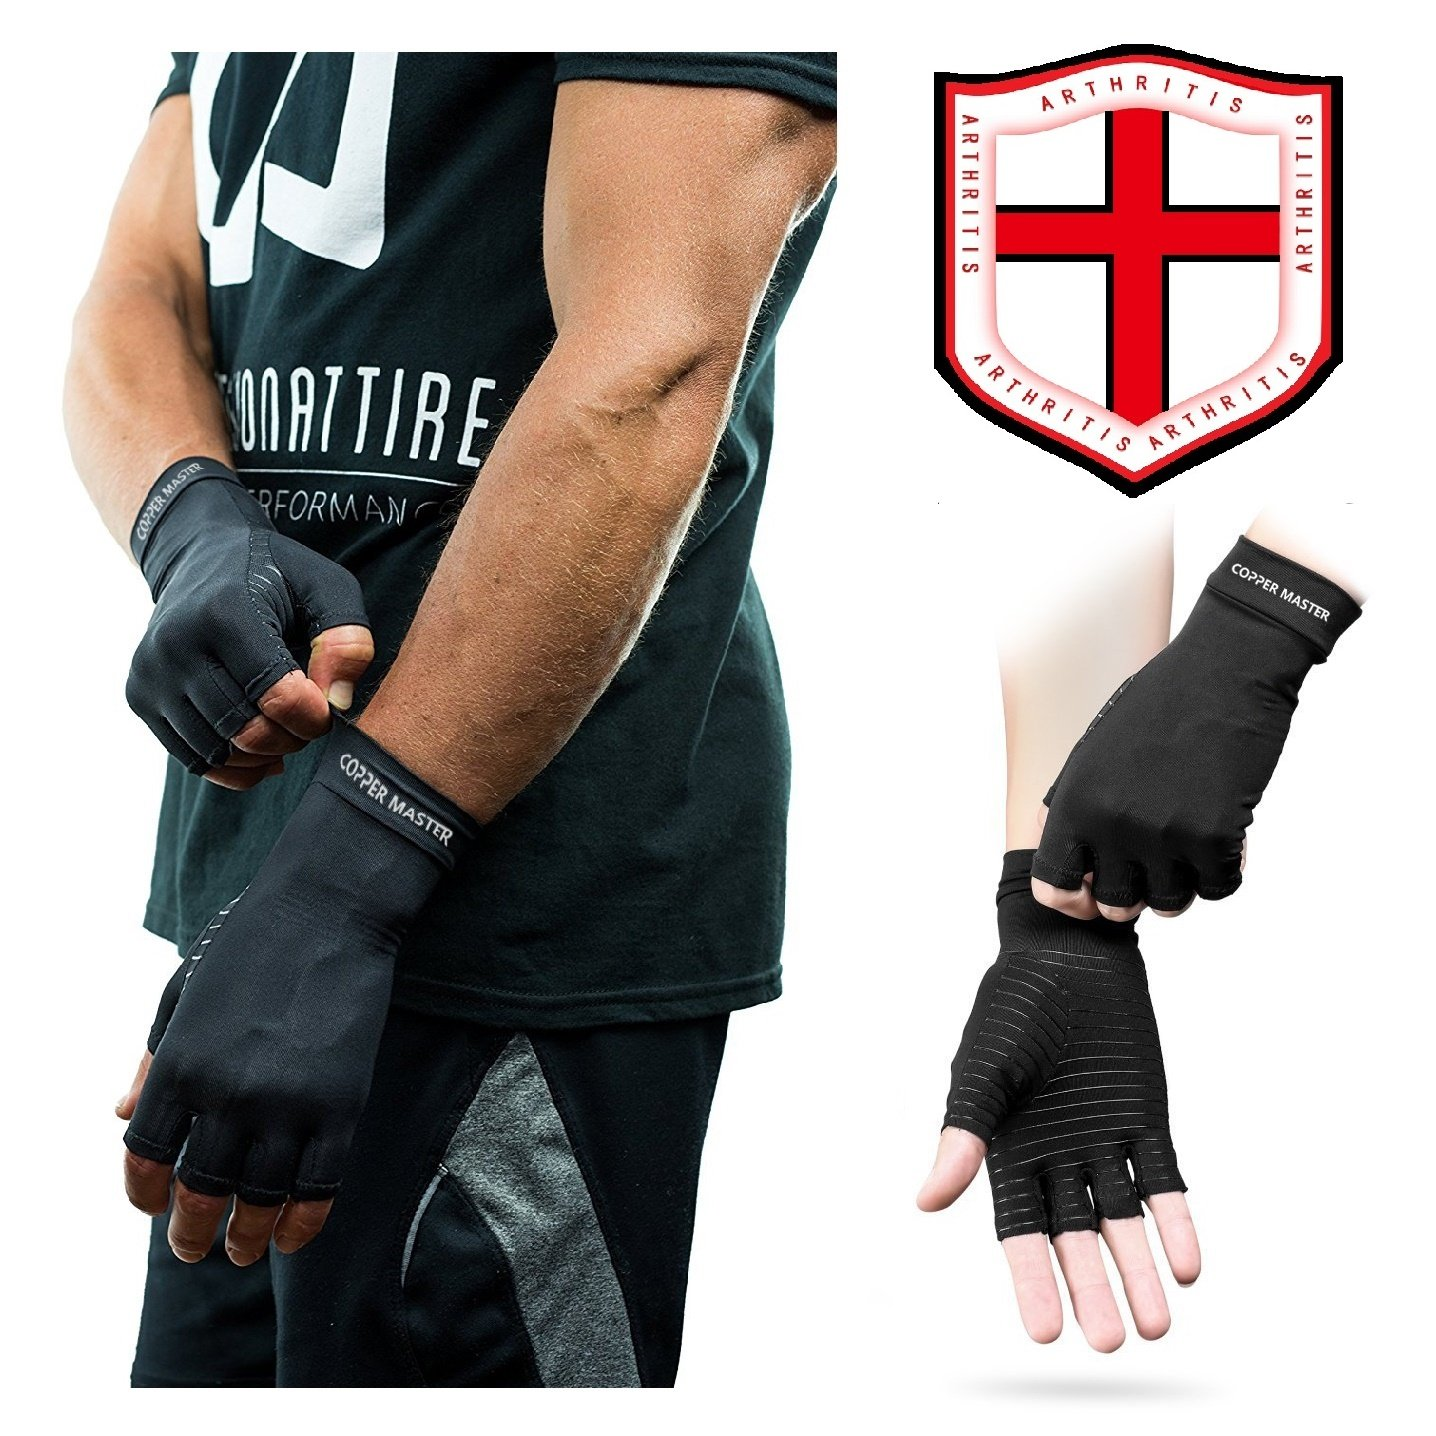 Arthritis Gloves Women- Copper Gloves For Men- Compression Gloves Recovery & Relieve For Arthritis, RSI, Carpal Tunnel, Swollen Hands, Tendonitis, Everyday Support & More- Fingerless Gloves/ Black/ L by Highcamp (Image #6)